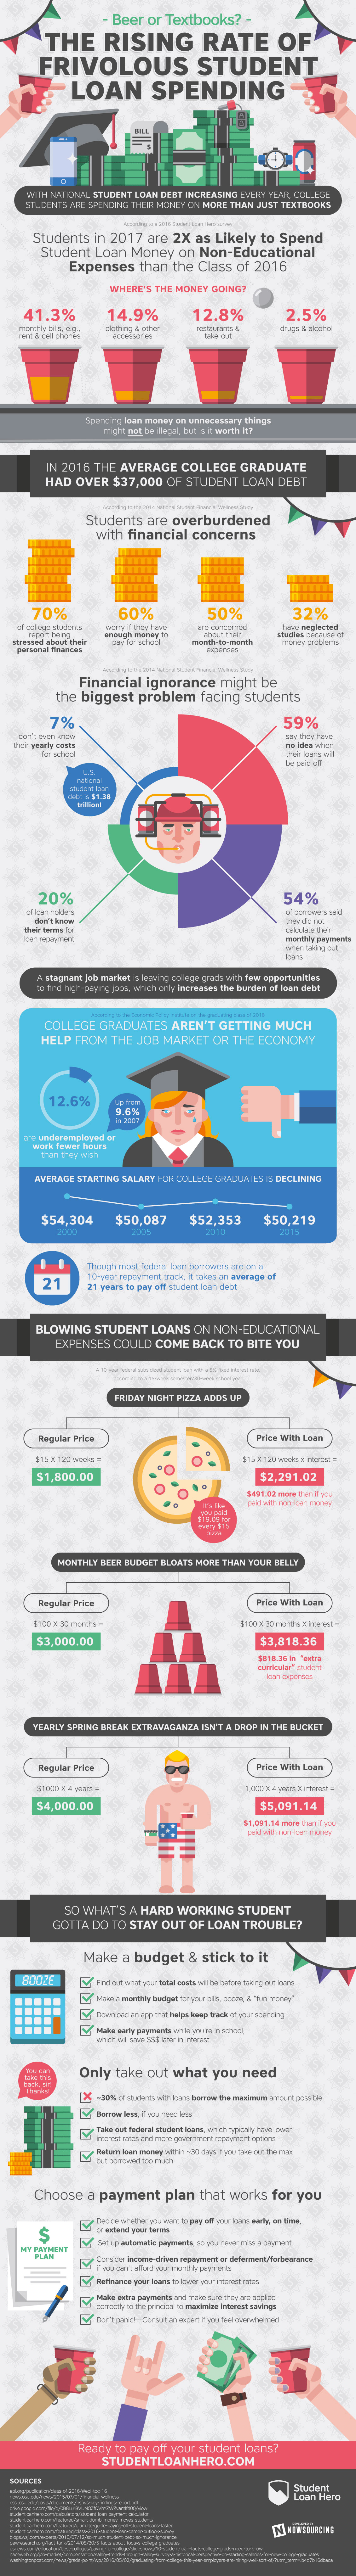 How Students Are Actually Spending Their School Loans